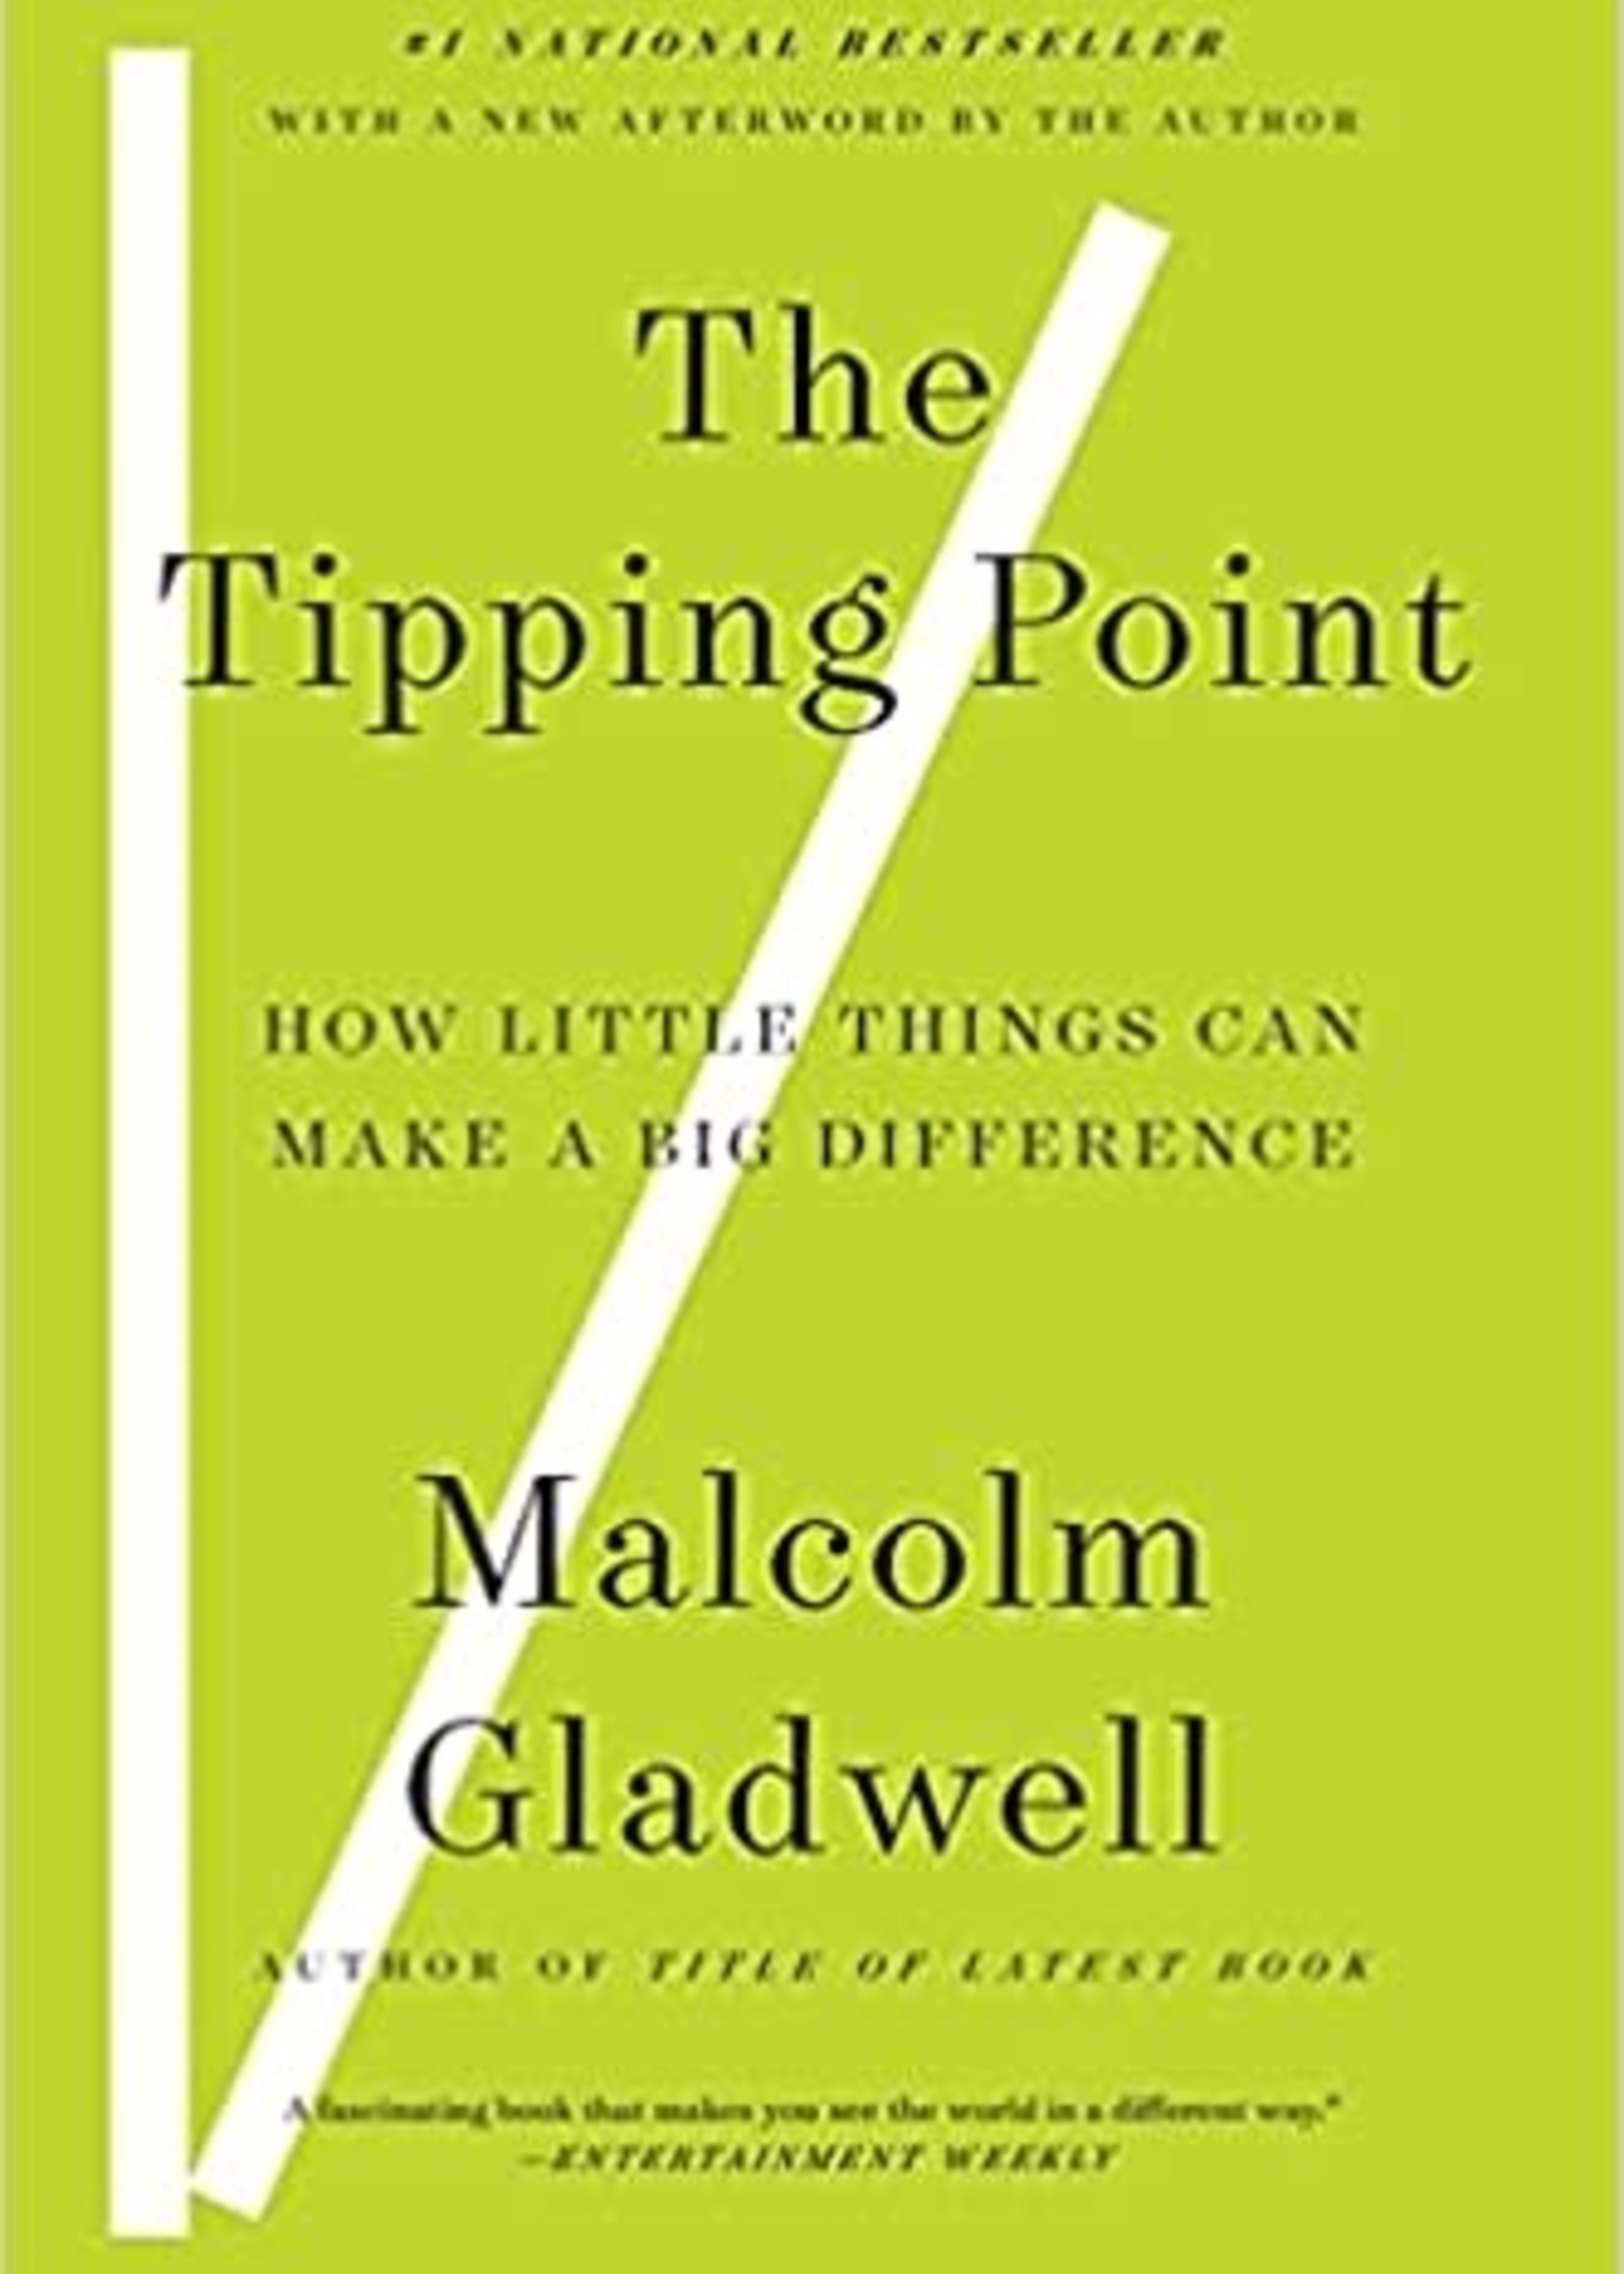 The Tipping Point: How the Little Things Can Make a Big Difference by Malcolm Gladwell